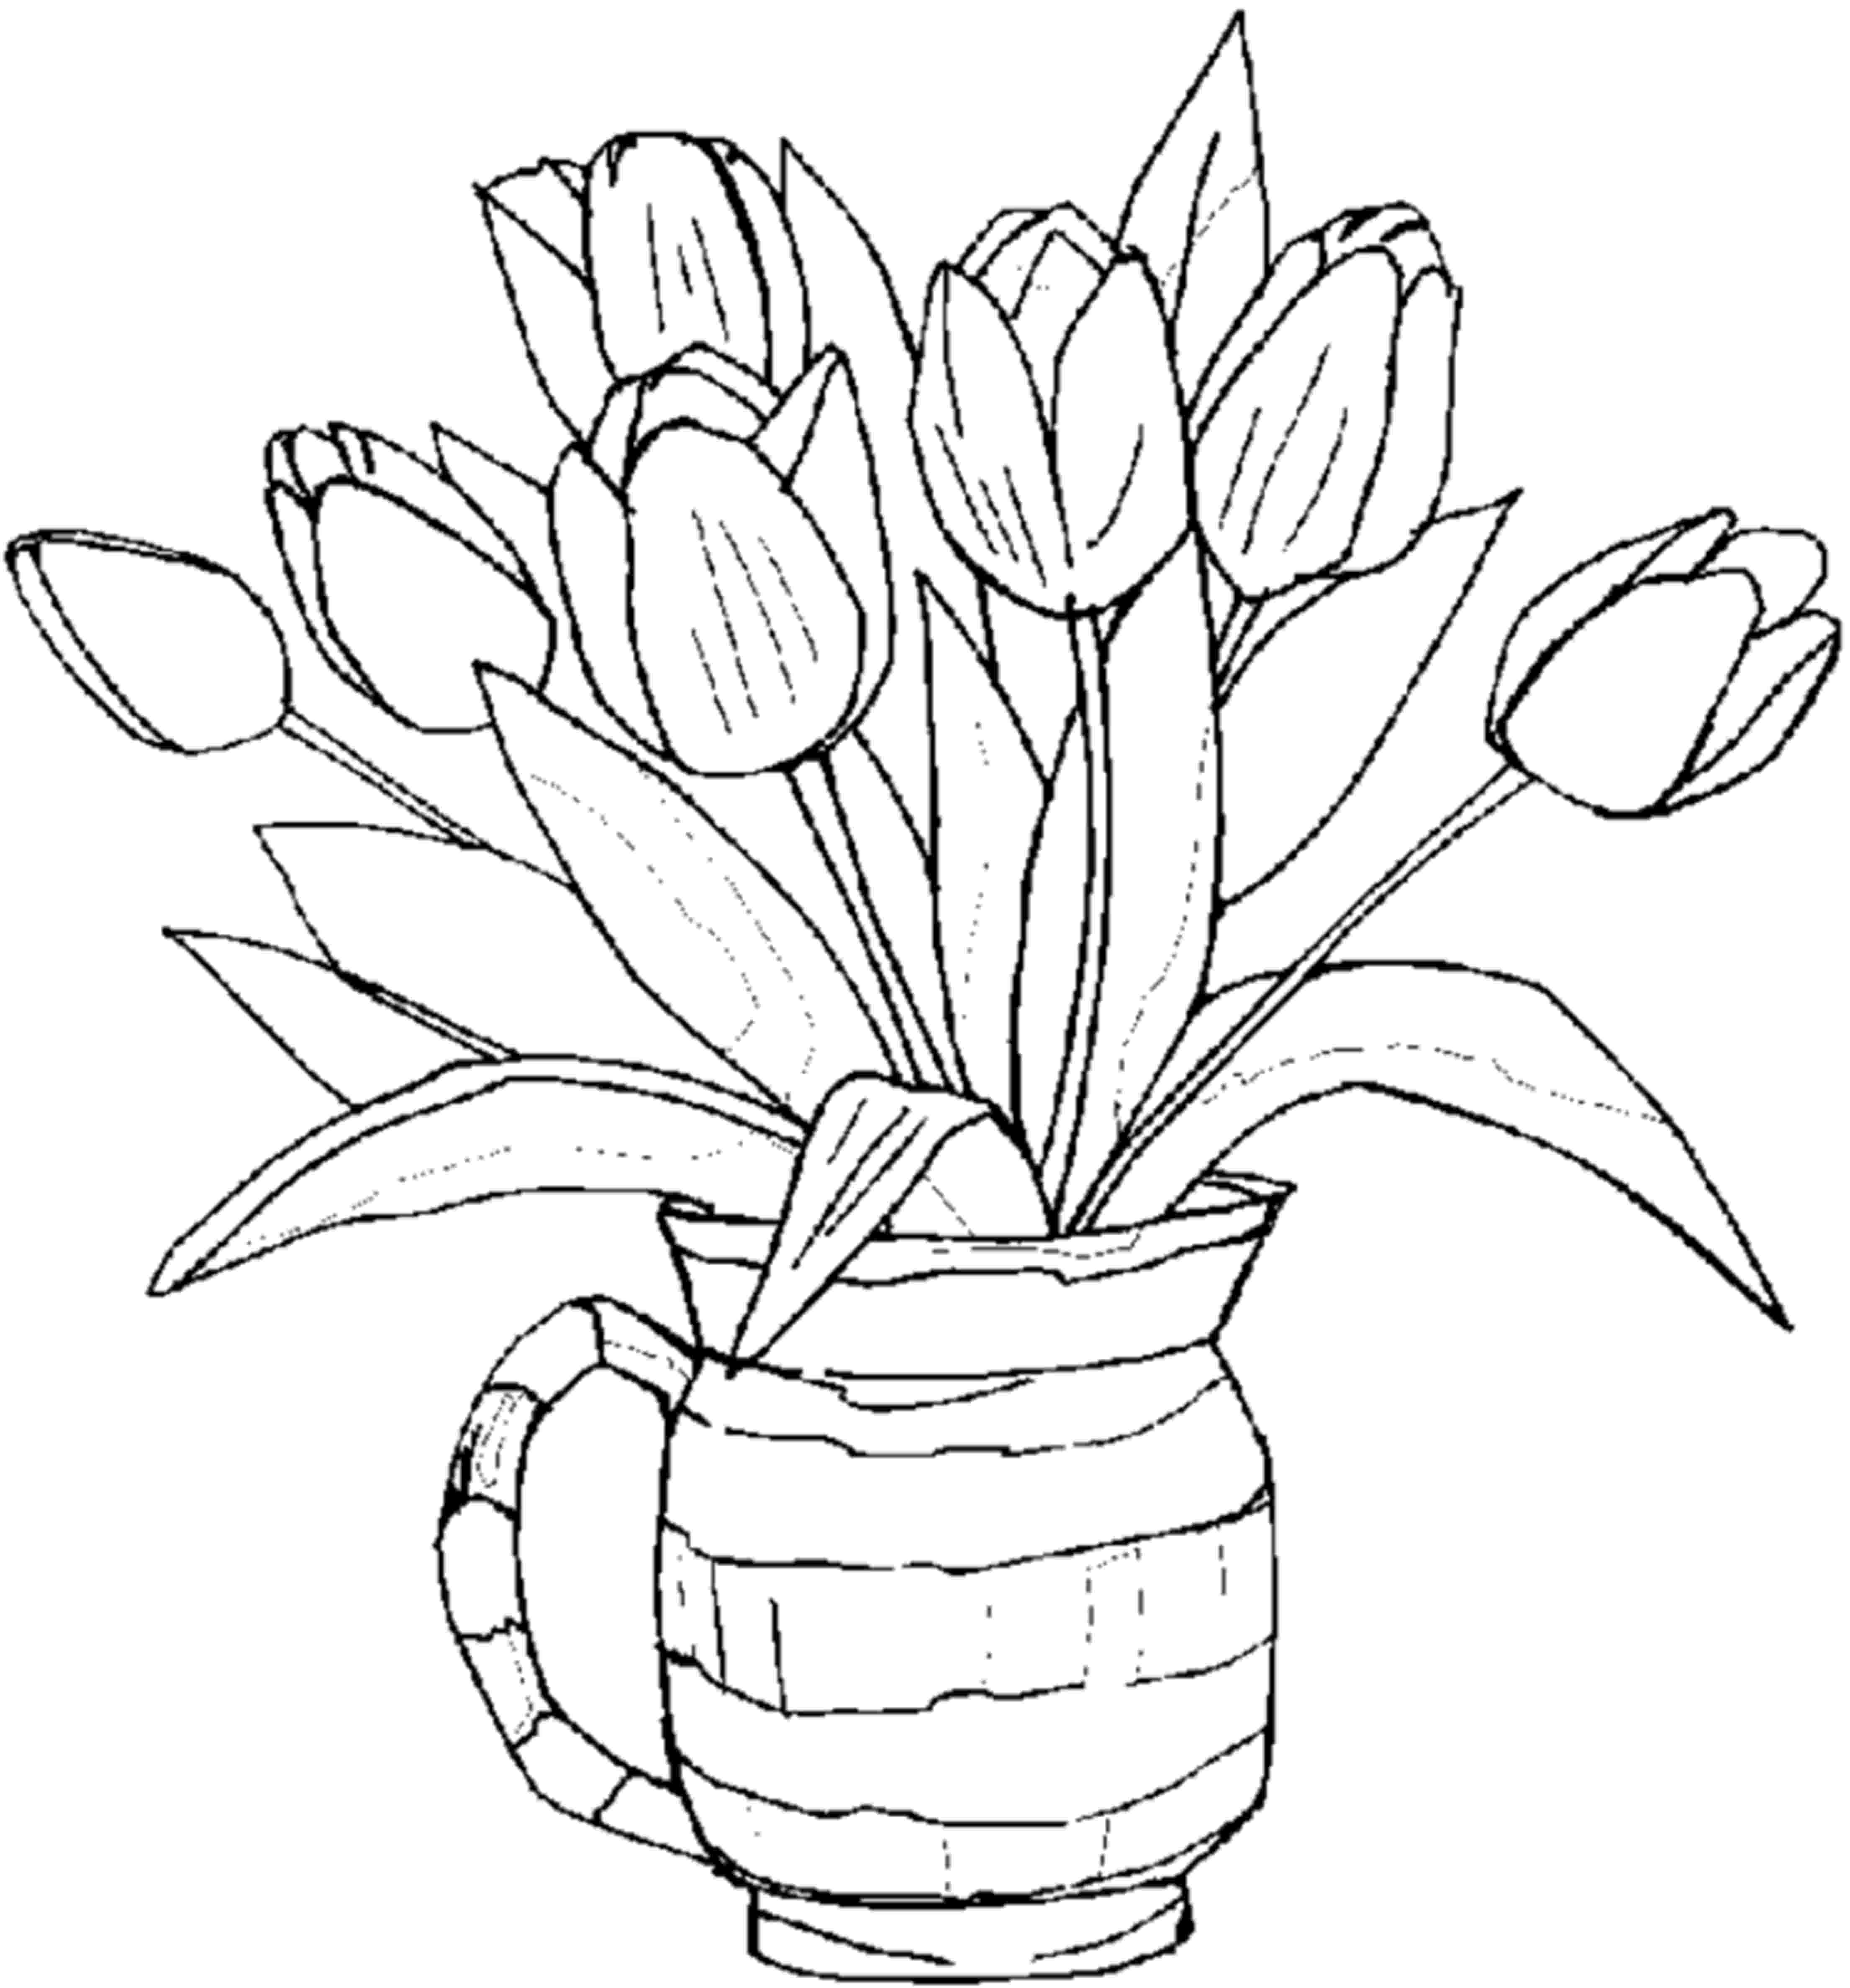 flower coloring sheets for kids free printable flower coloring pages for kids best flower for coloring sheets kids